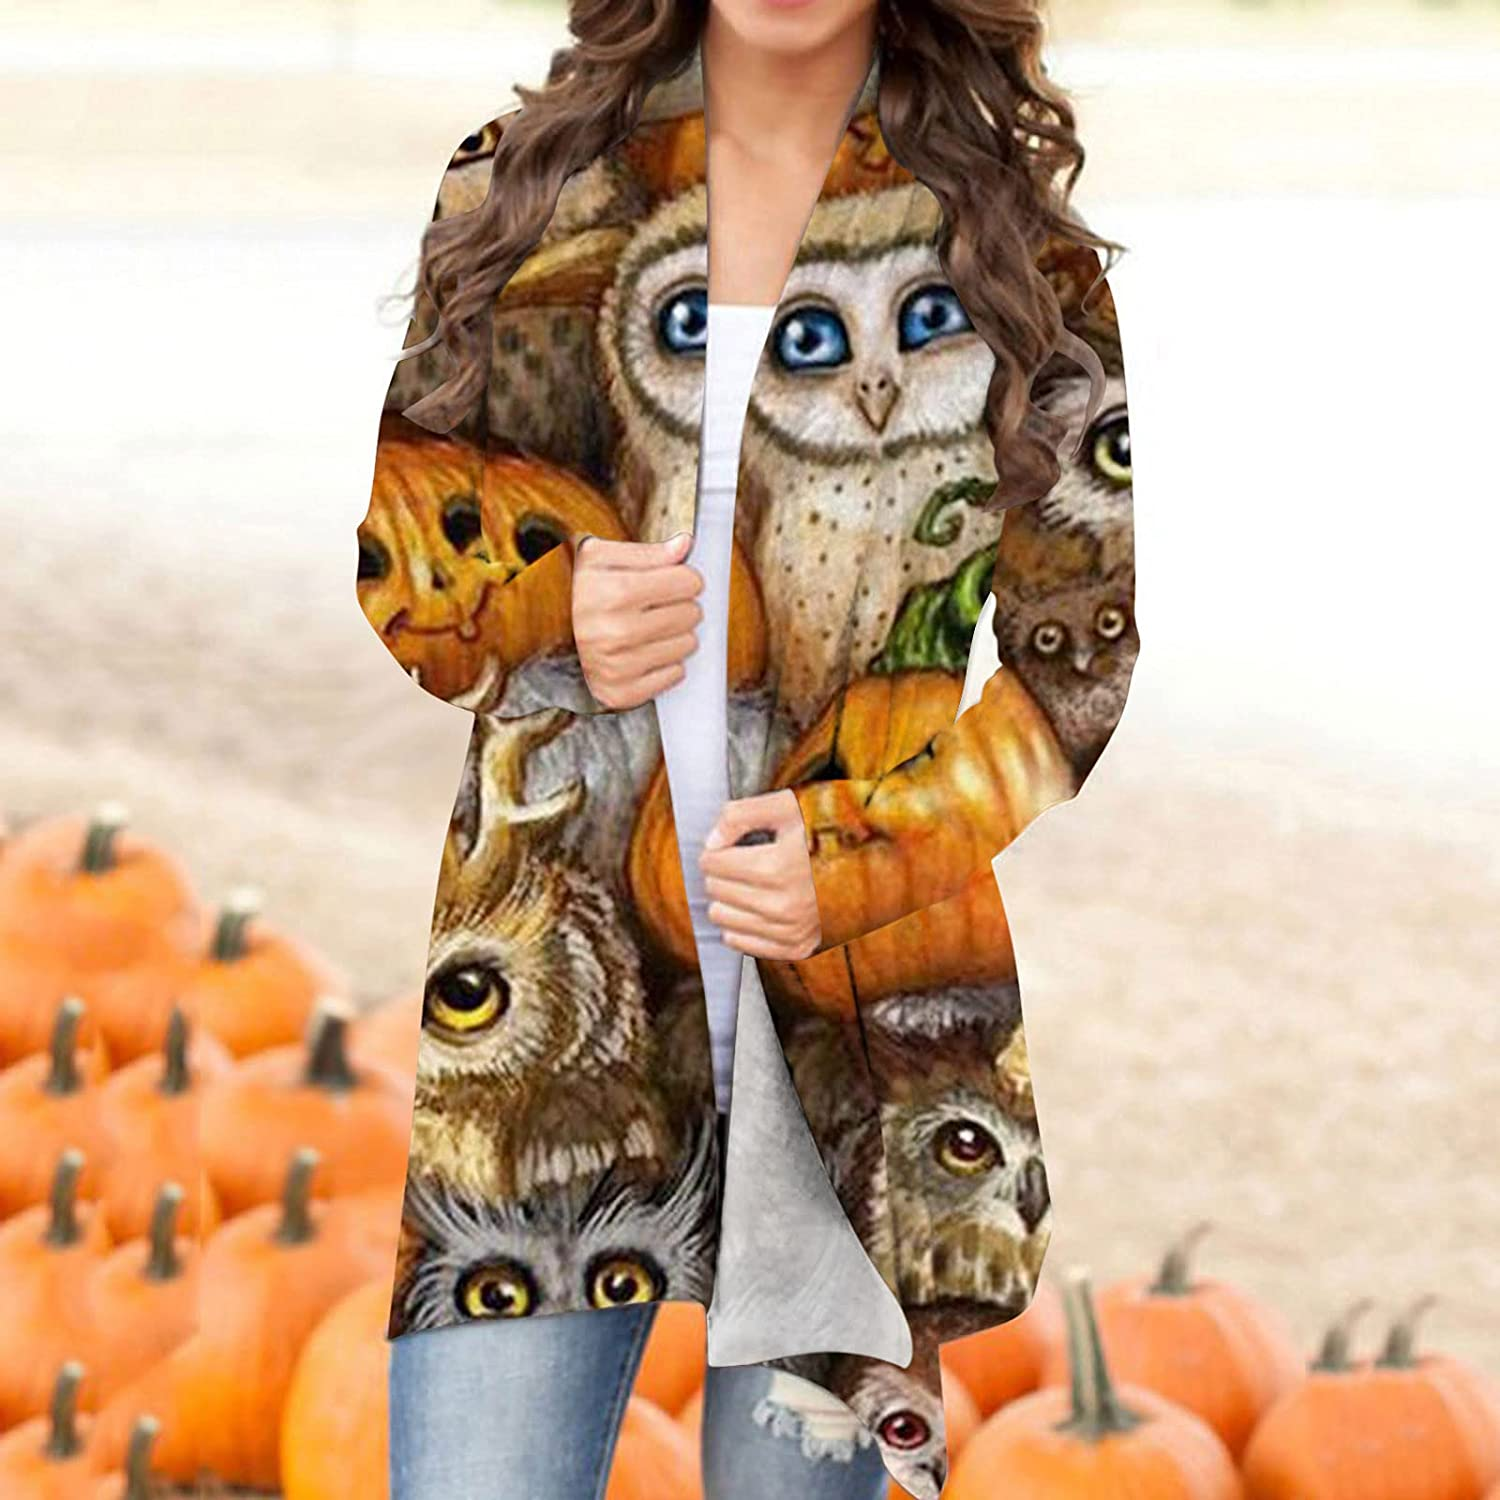 UOCUFY Womens Lightweight Cardigans, Womens Halloween Funny Pumpkin Ghost Printed Coat Long Sleeve Open Front Top